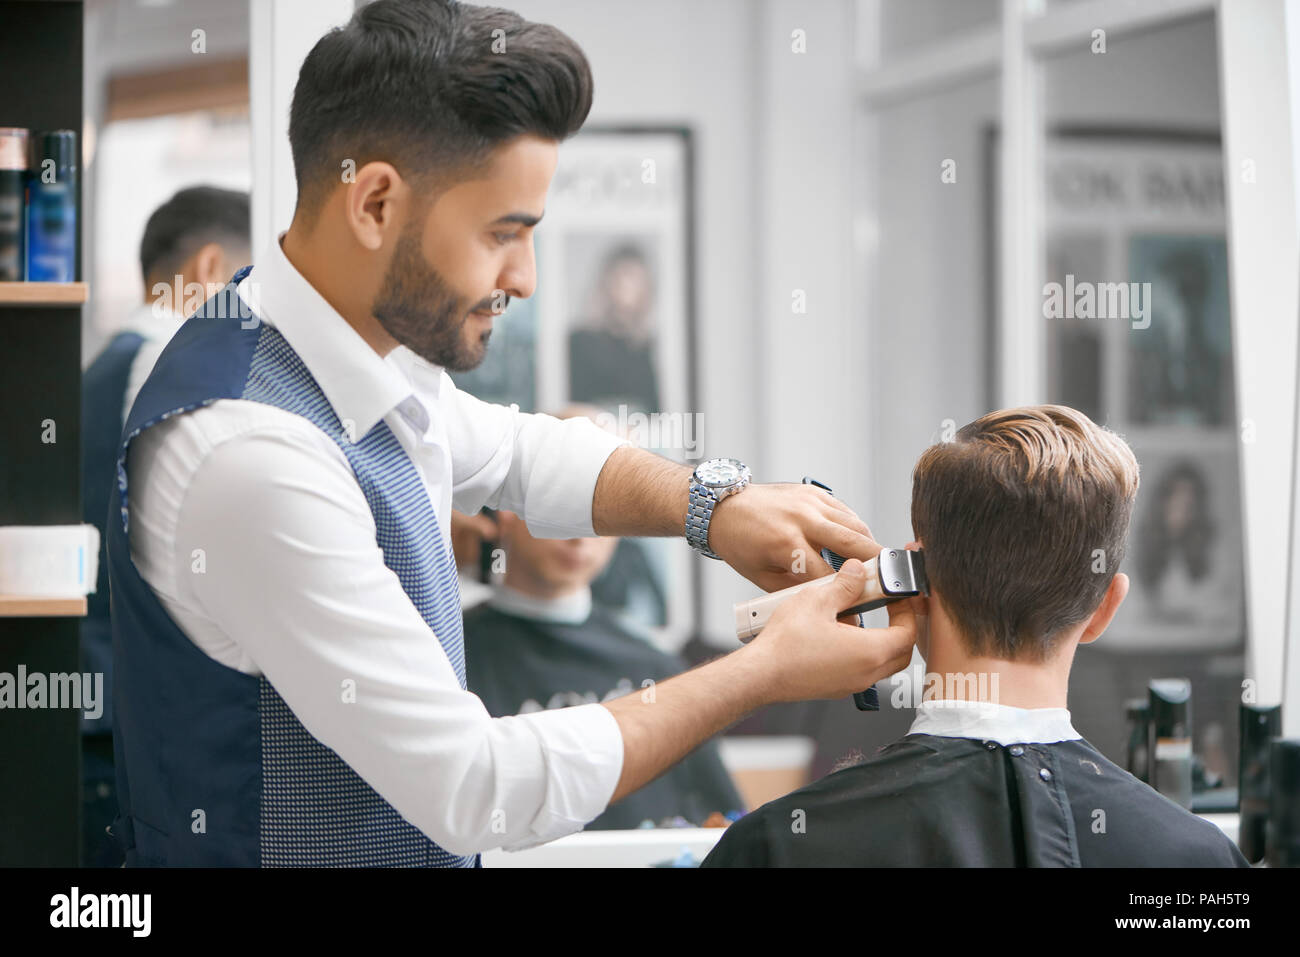 Barber doing new haircut for young client sitting in front of mirror. Wearing white casual shirt, grey waistcoat, watch. Looking concentrated, loving his job. Model covered with special black cape. - Stock Image